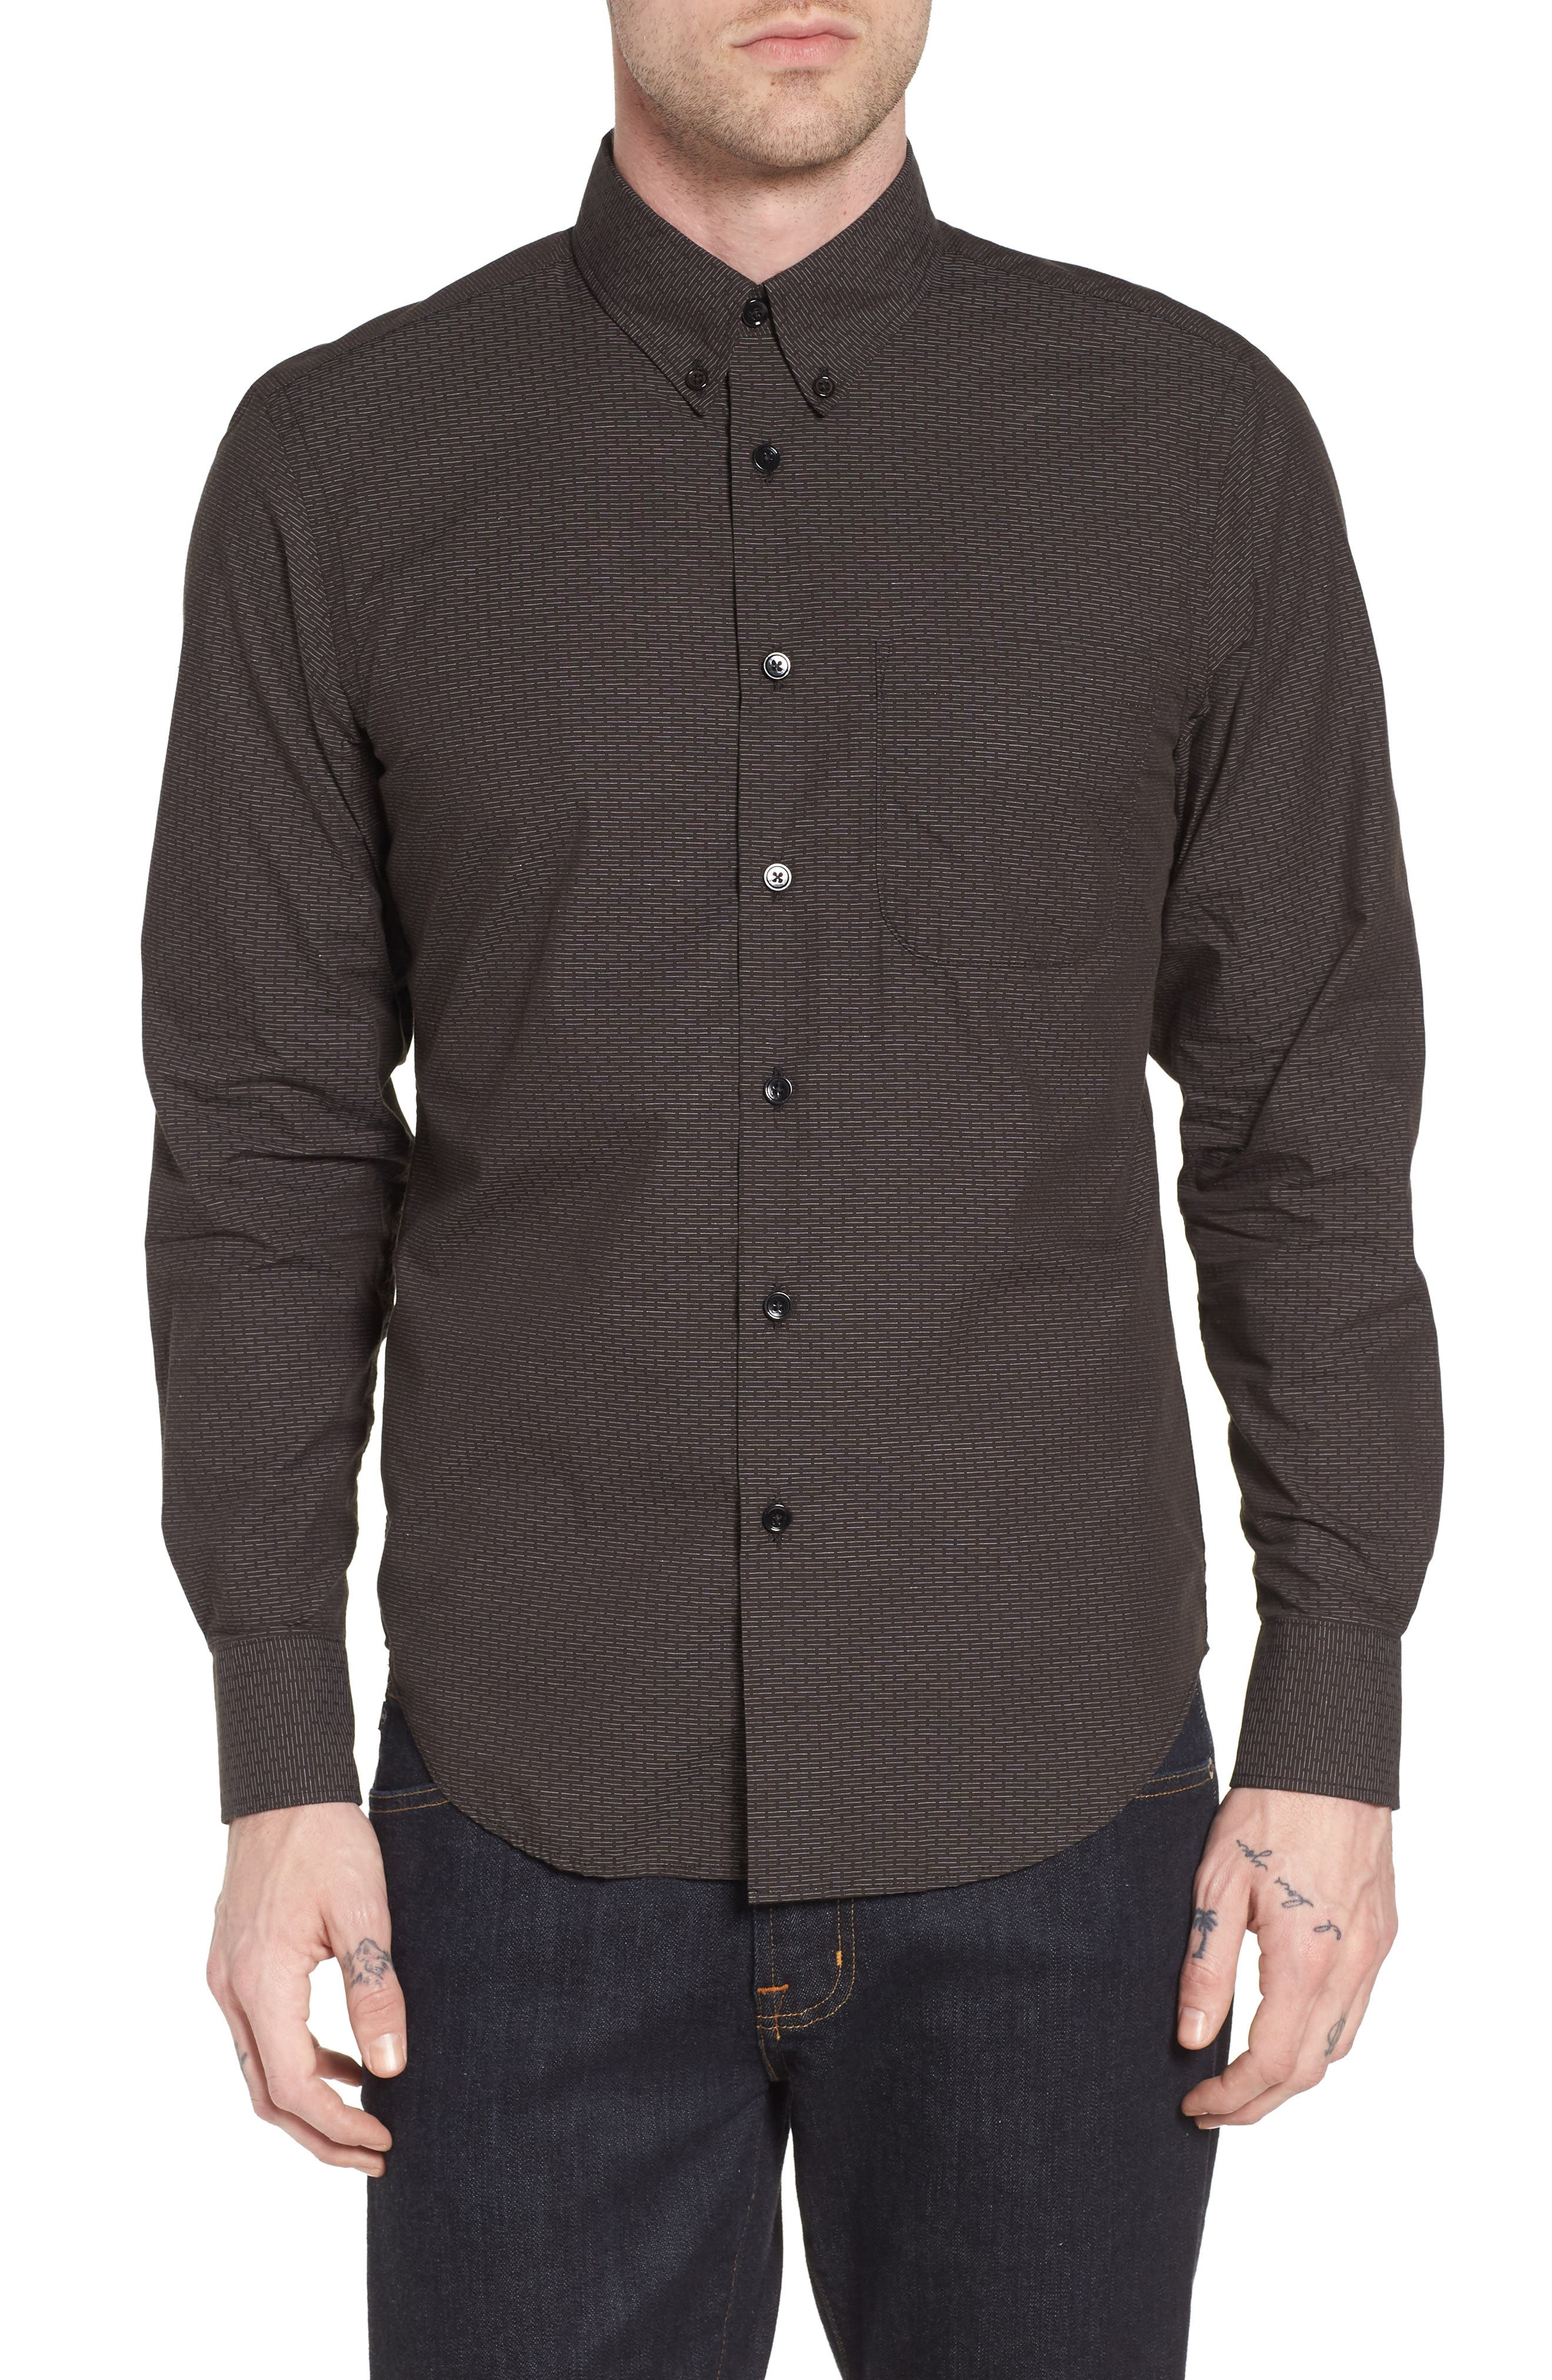 Alternate Image 1 Selected - Naked & Famous Dobby Woven Shirt